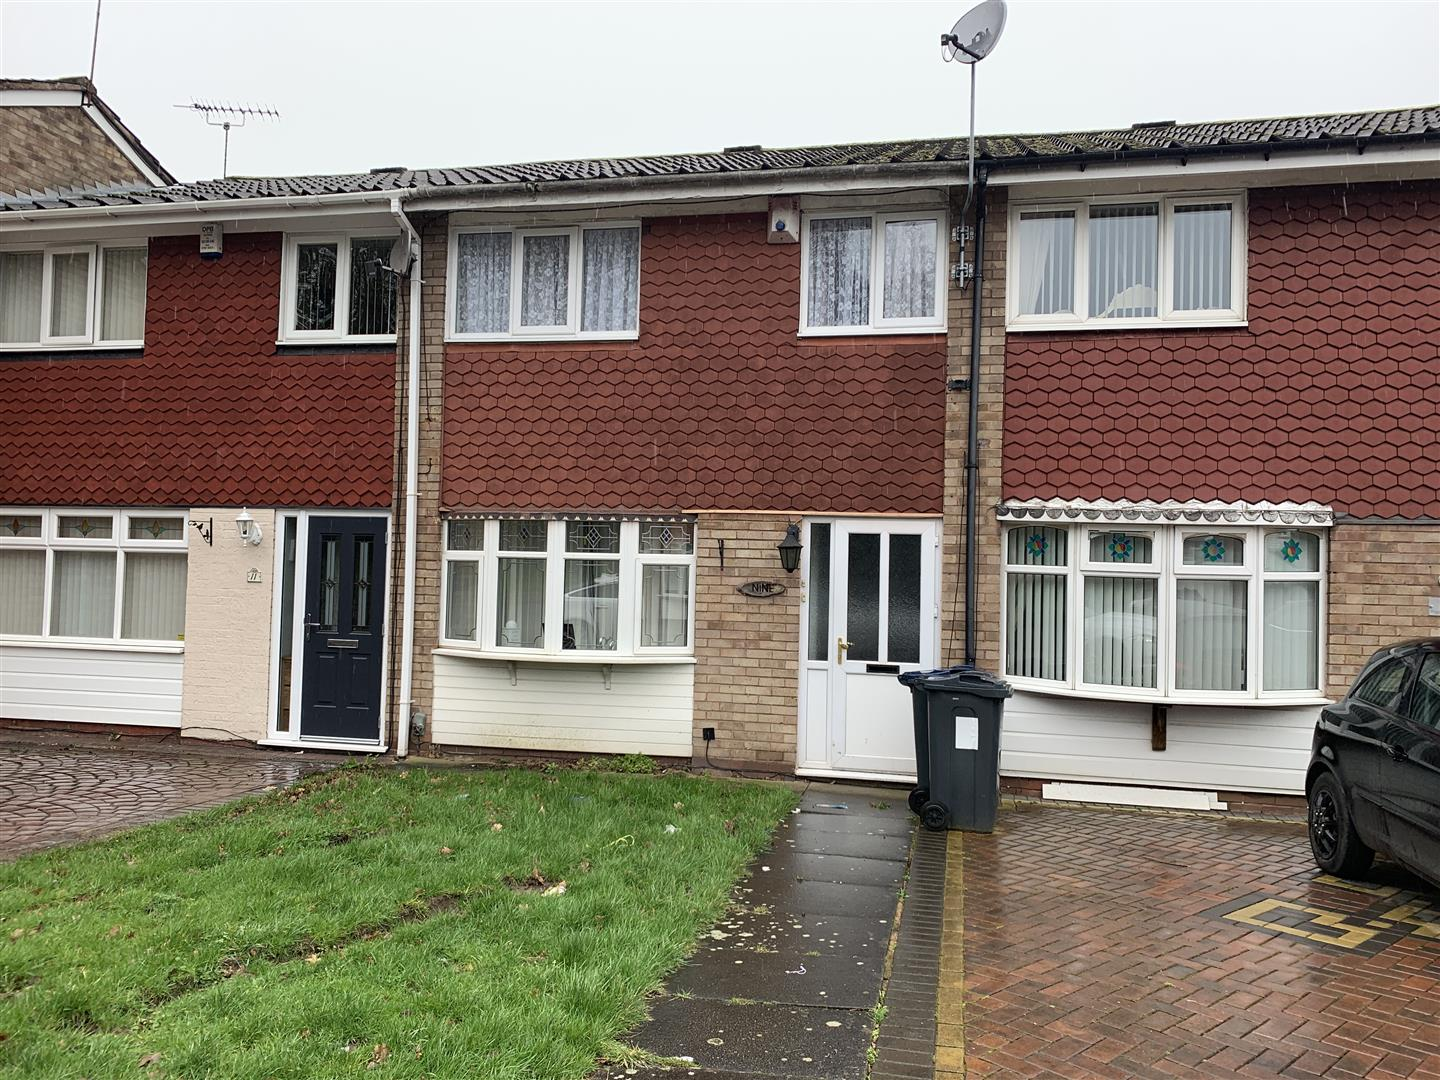 3 bed house for sale in Wincanton Croft, Bromford Bridge, Birmingham, B36